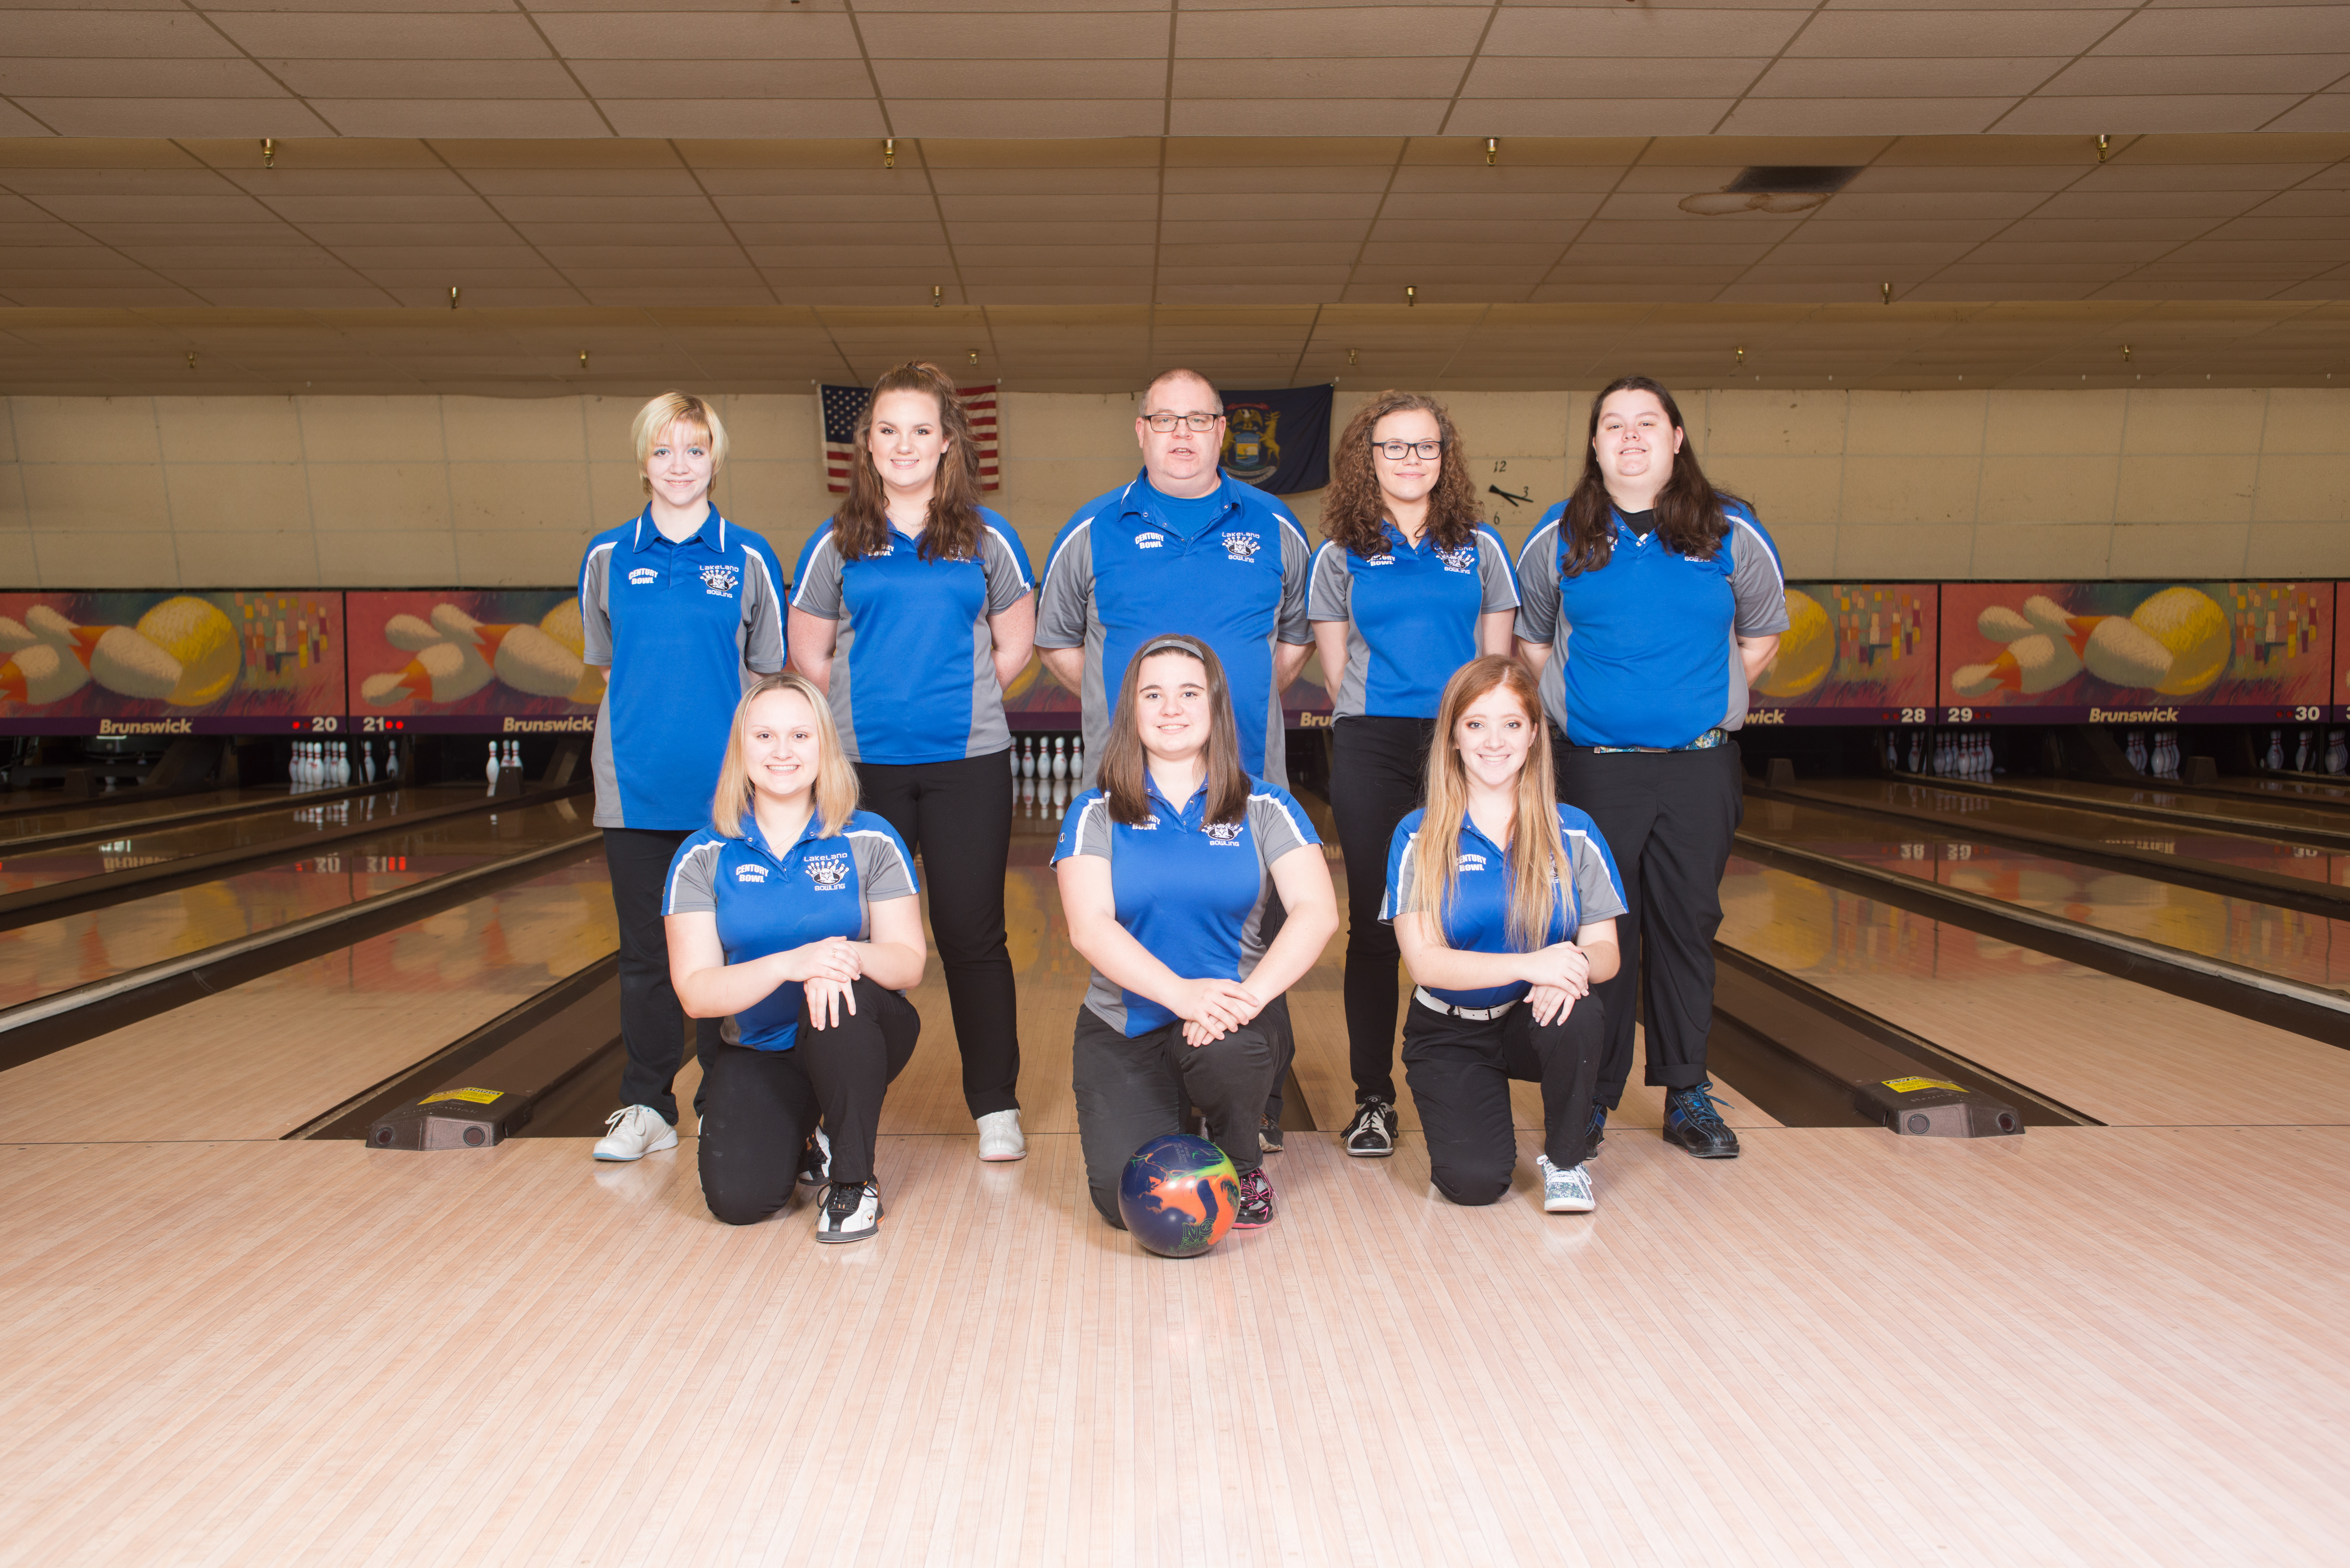 Girls Bowlers earn various All-State honors